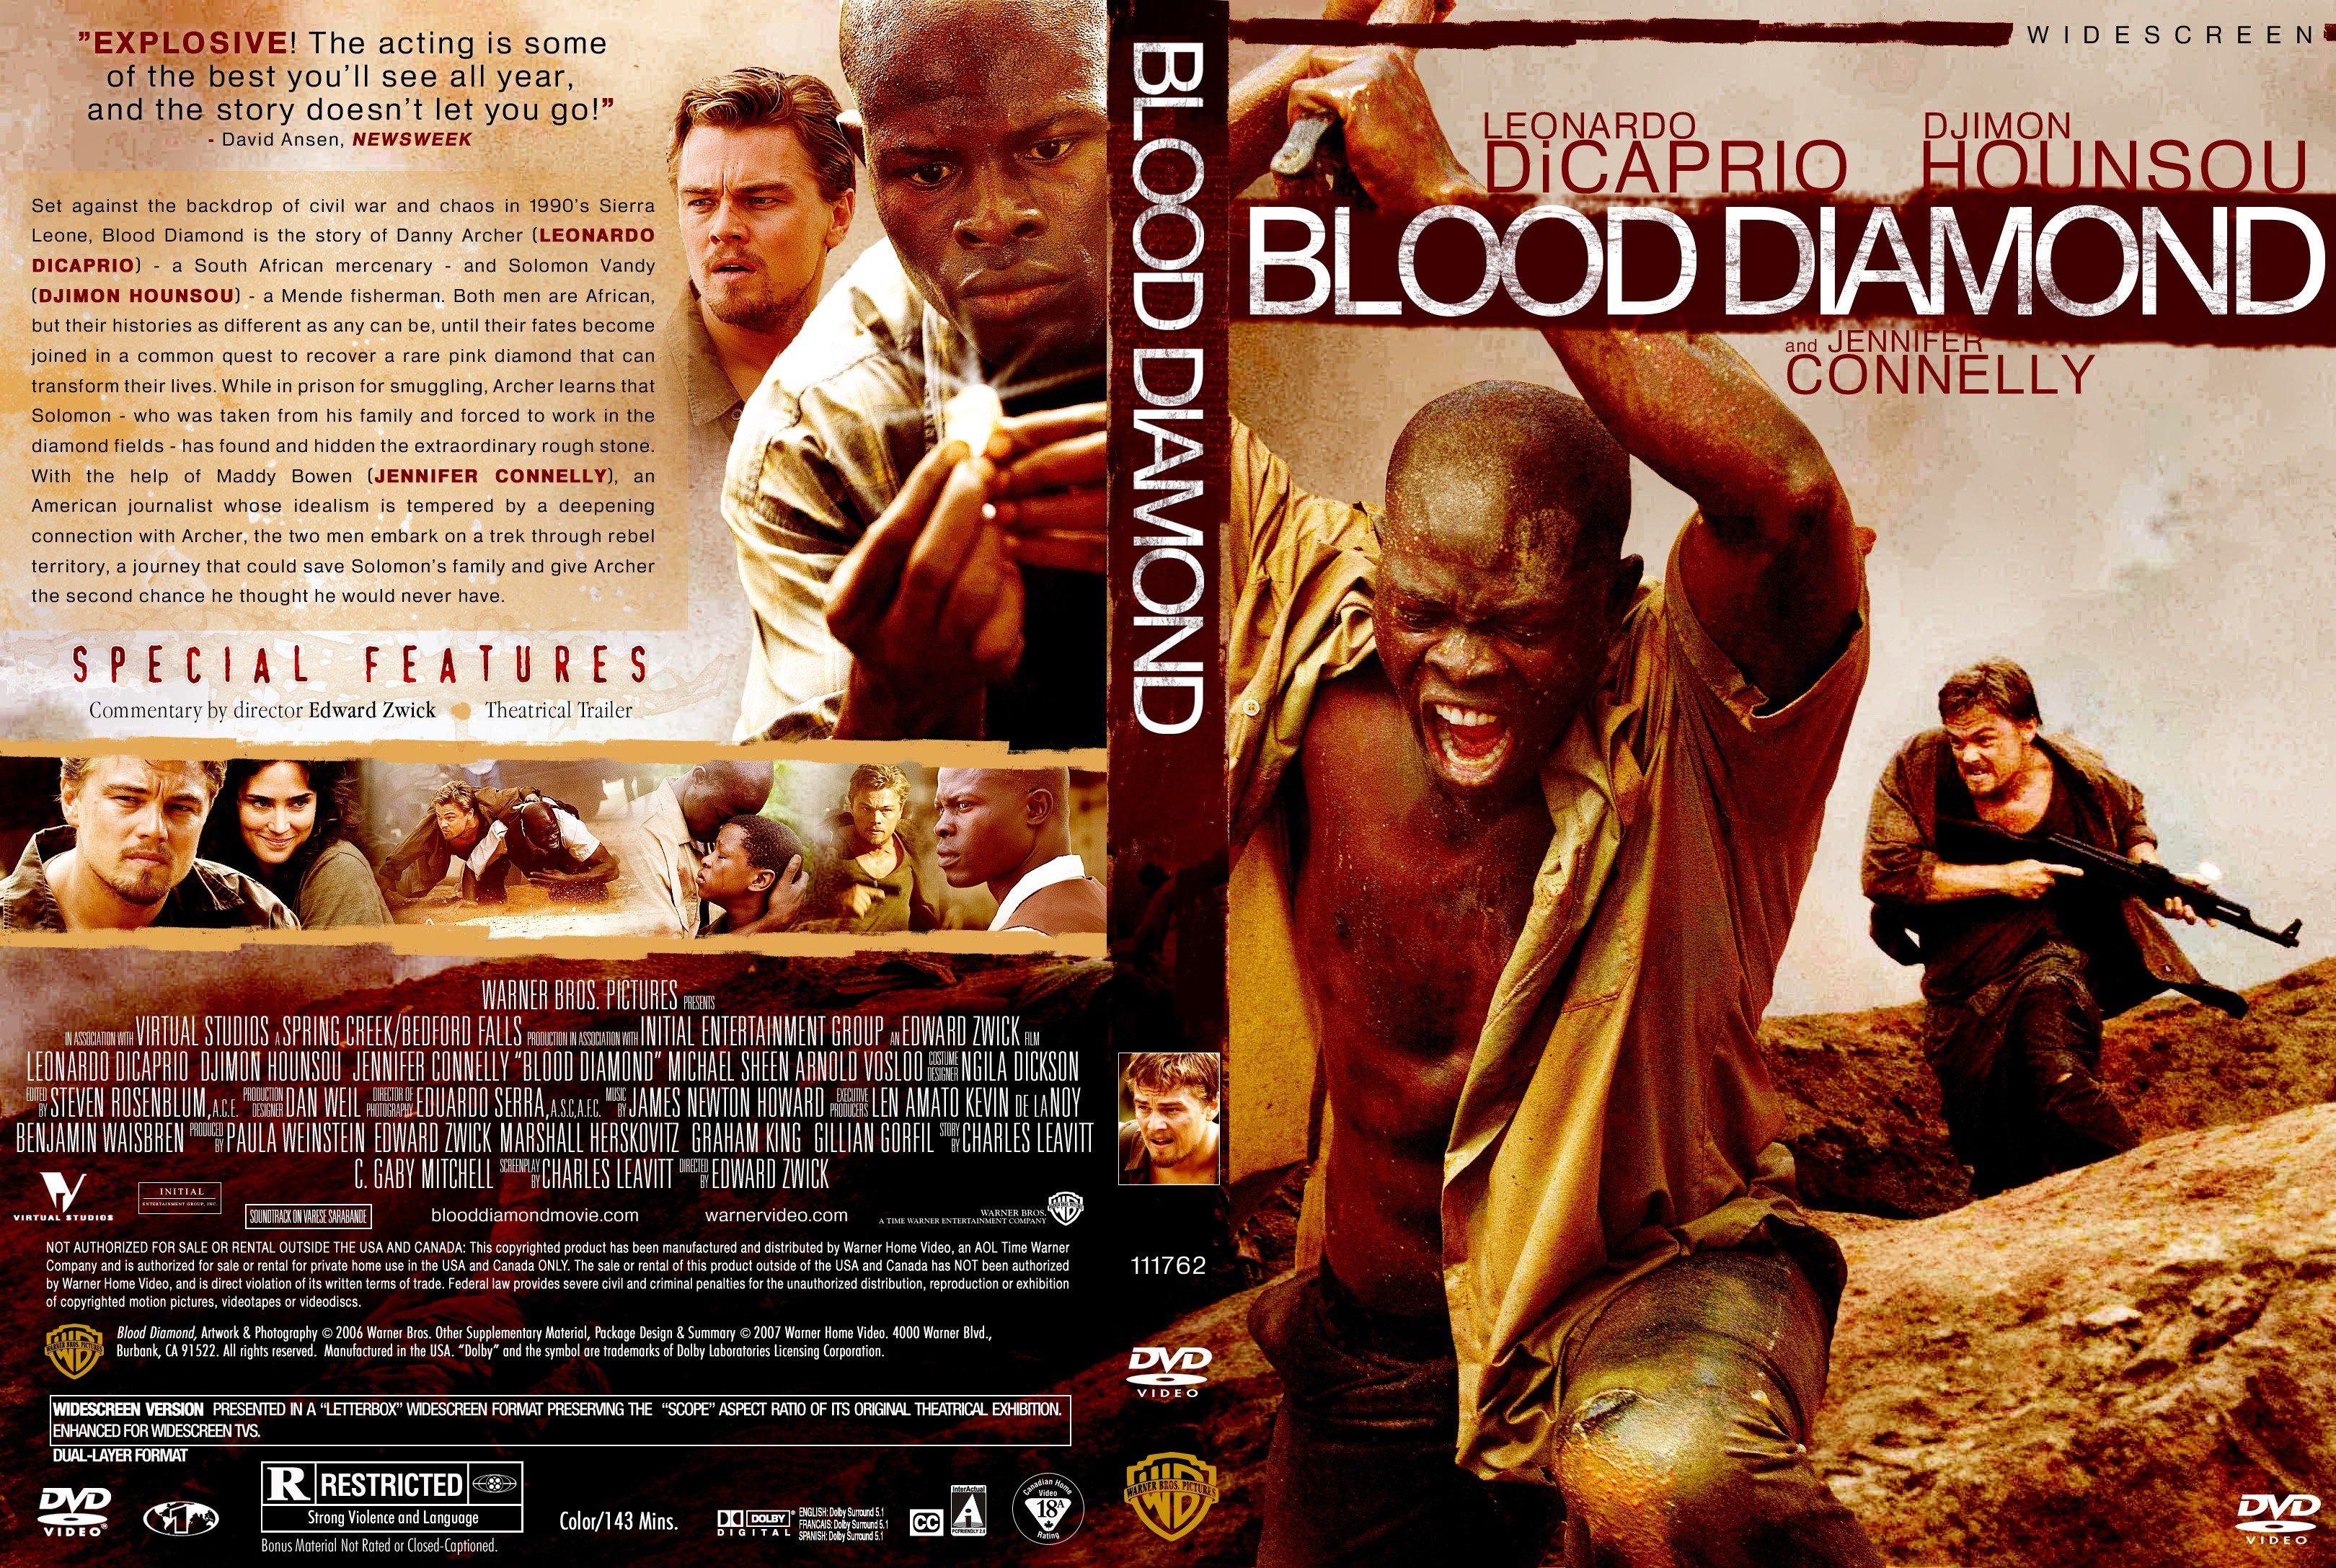 articles jsp dicaprio danny showgallery template djimon for solomon archer jakter hounsou sjelden leonardo blood diamond trondheimkino bildeserie p vandy en